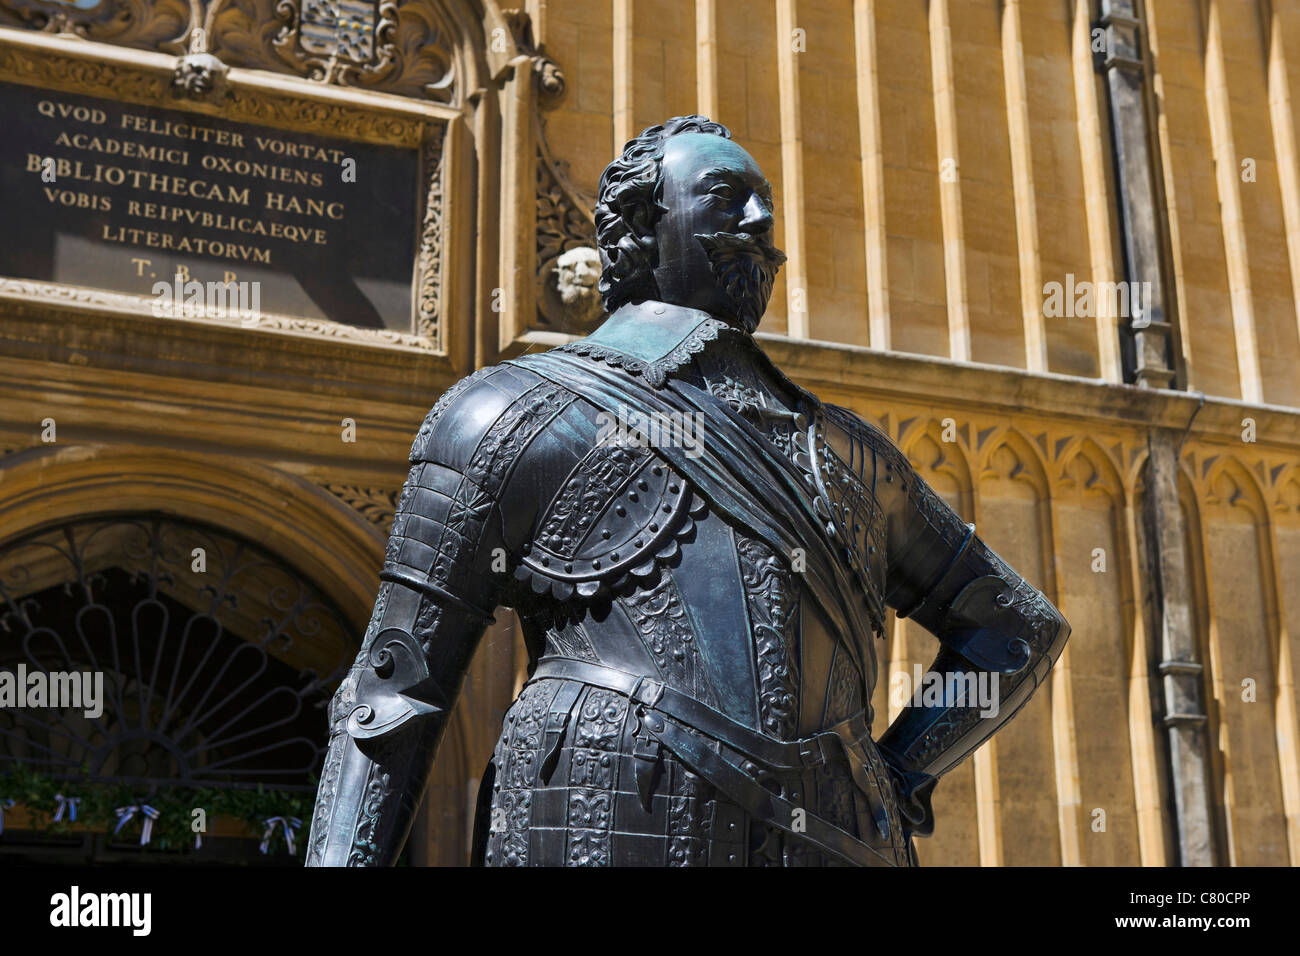 Statue of the Earl of Pembroke in the Old Schools Quadrangle, The Bodleian Library, Oxford, Oxfordshire, England, - Stock Image